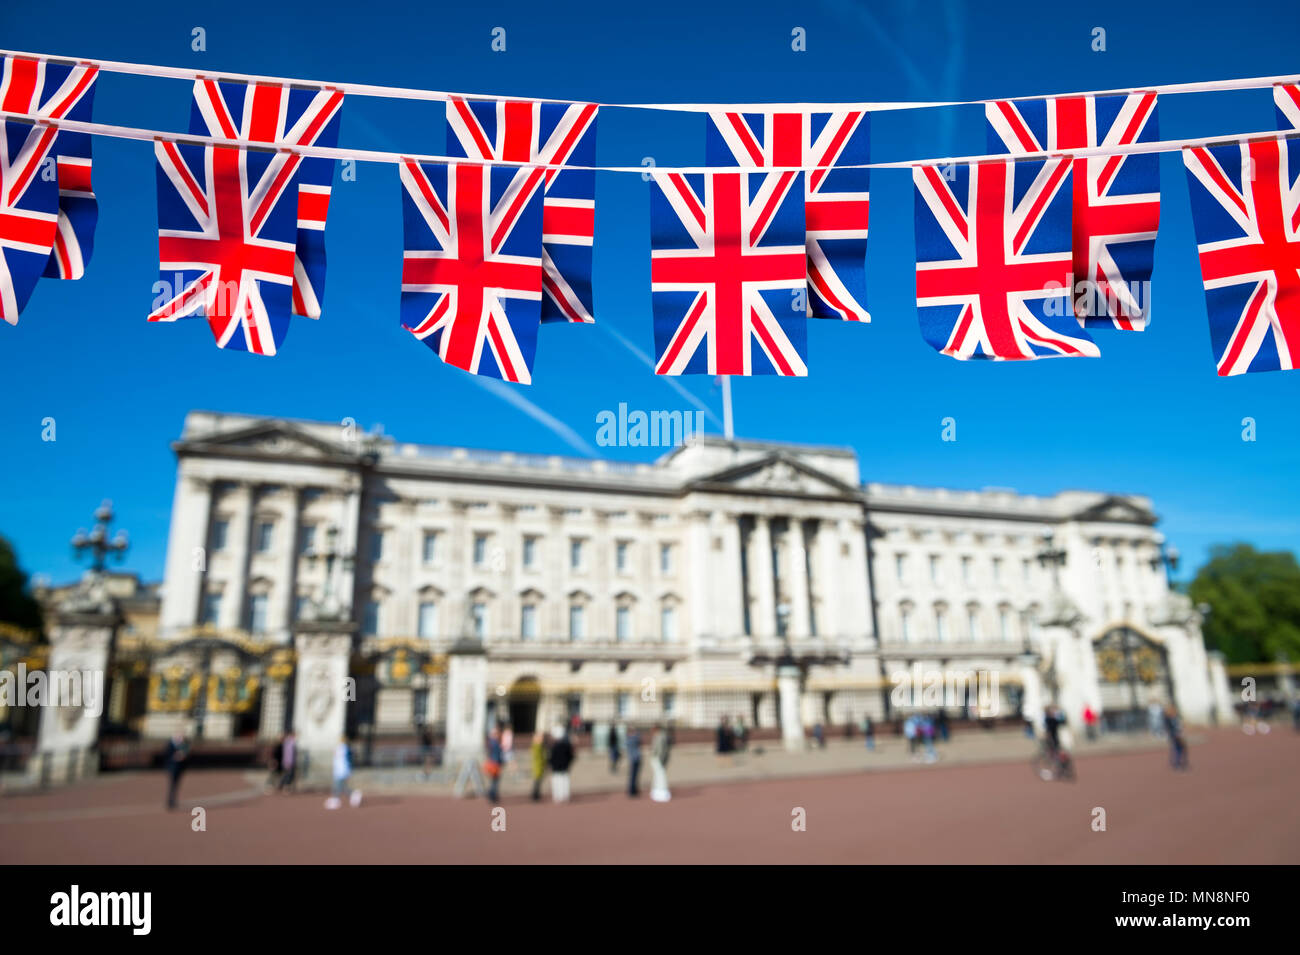 Union Jack flag bunting decorates the Mall in front of Buckingham Palace ahead of the Royal Wedding in London, England. - Stock Image